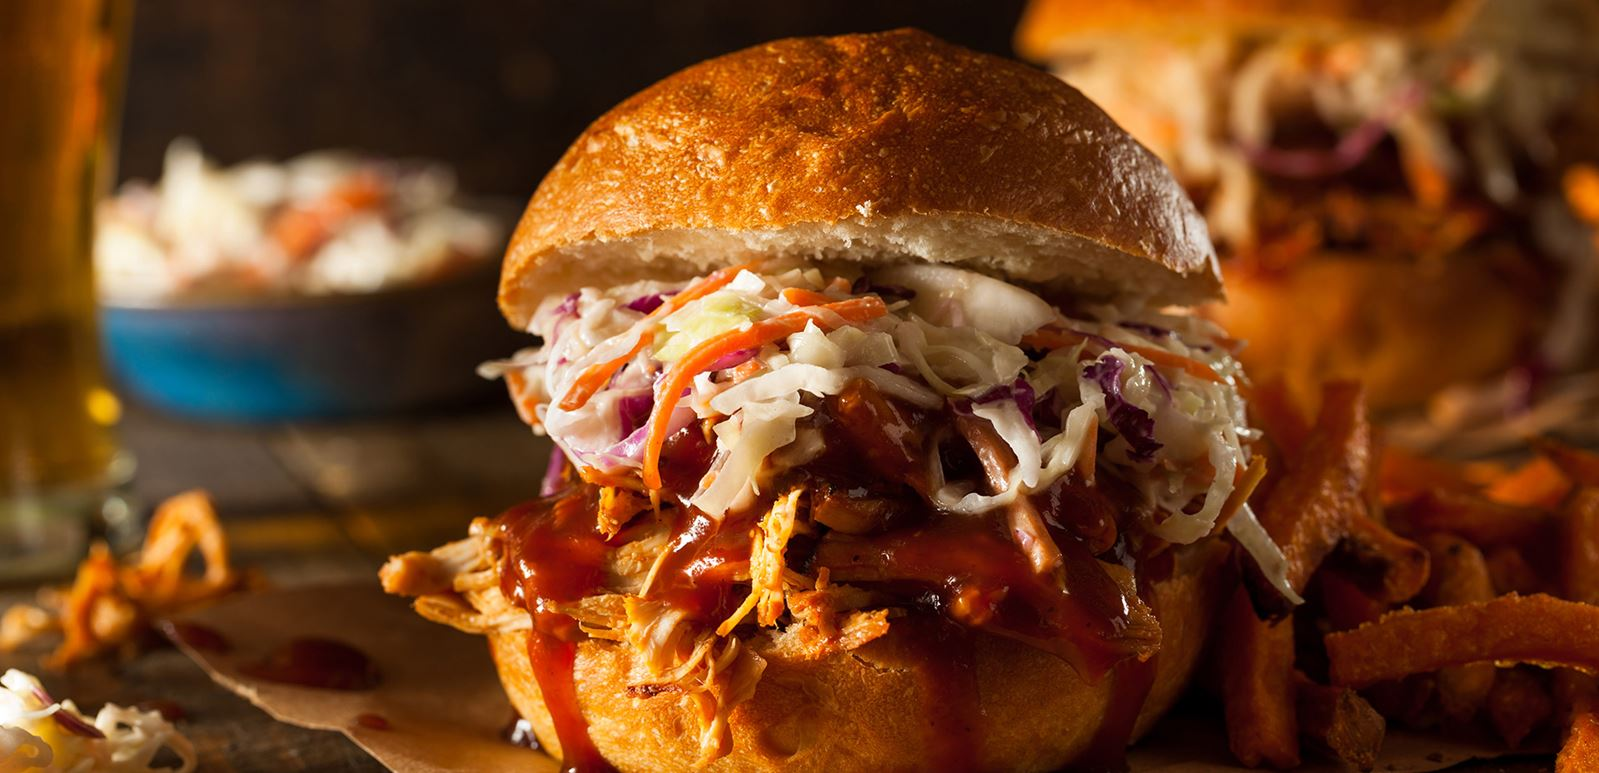 tehaleh-close-up-of-pulled-pork-slider-hero.jpg